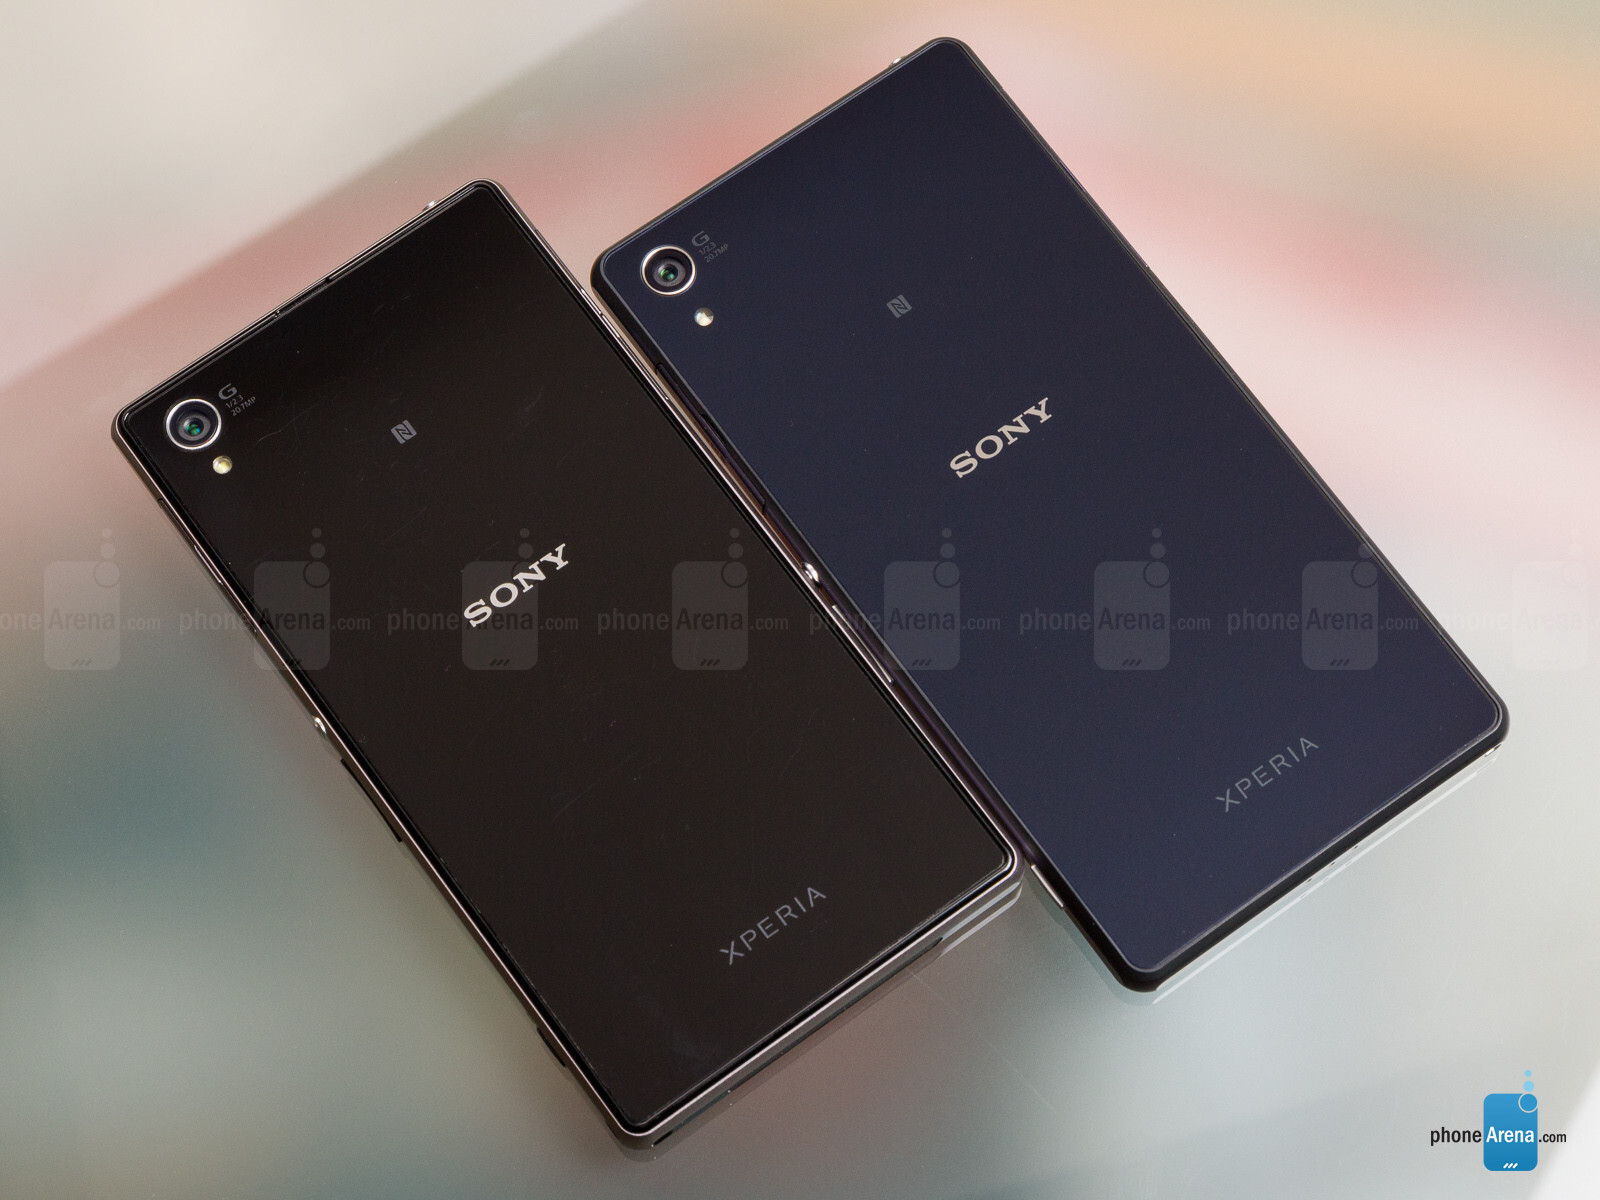 Xperia Z2 - right  Xperia Z1 - leftXperia Z1 Vs Xperia Z2